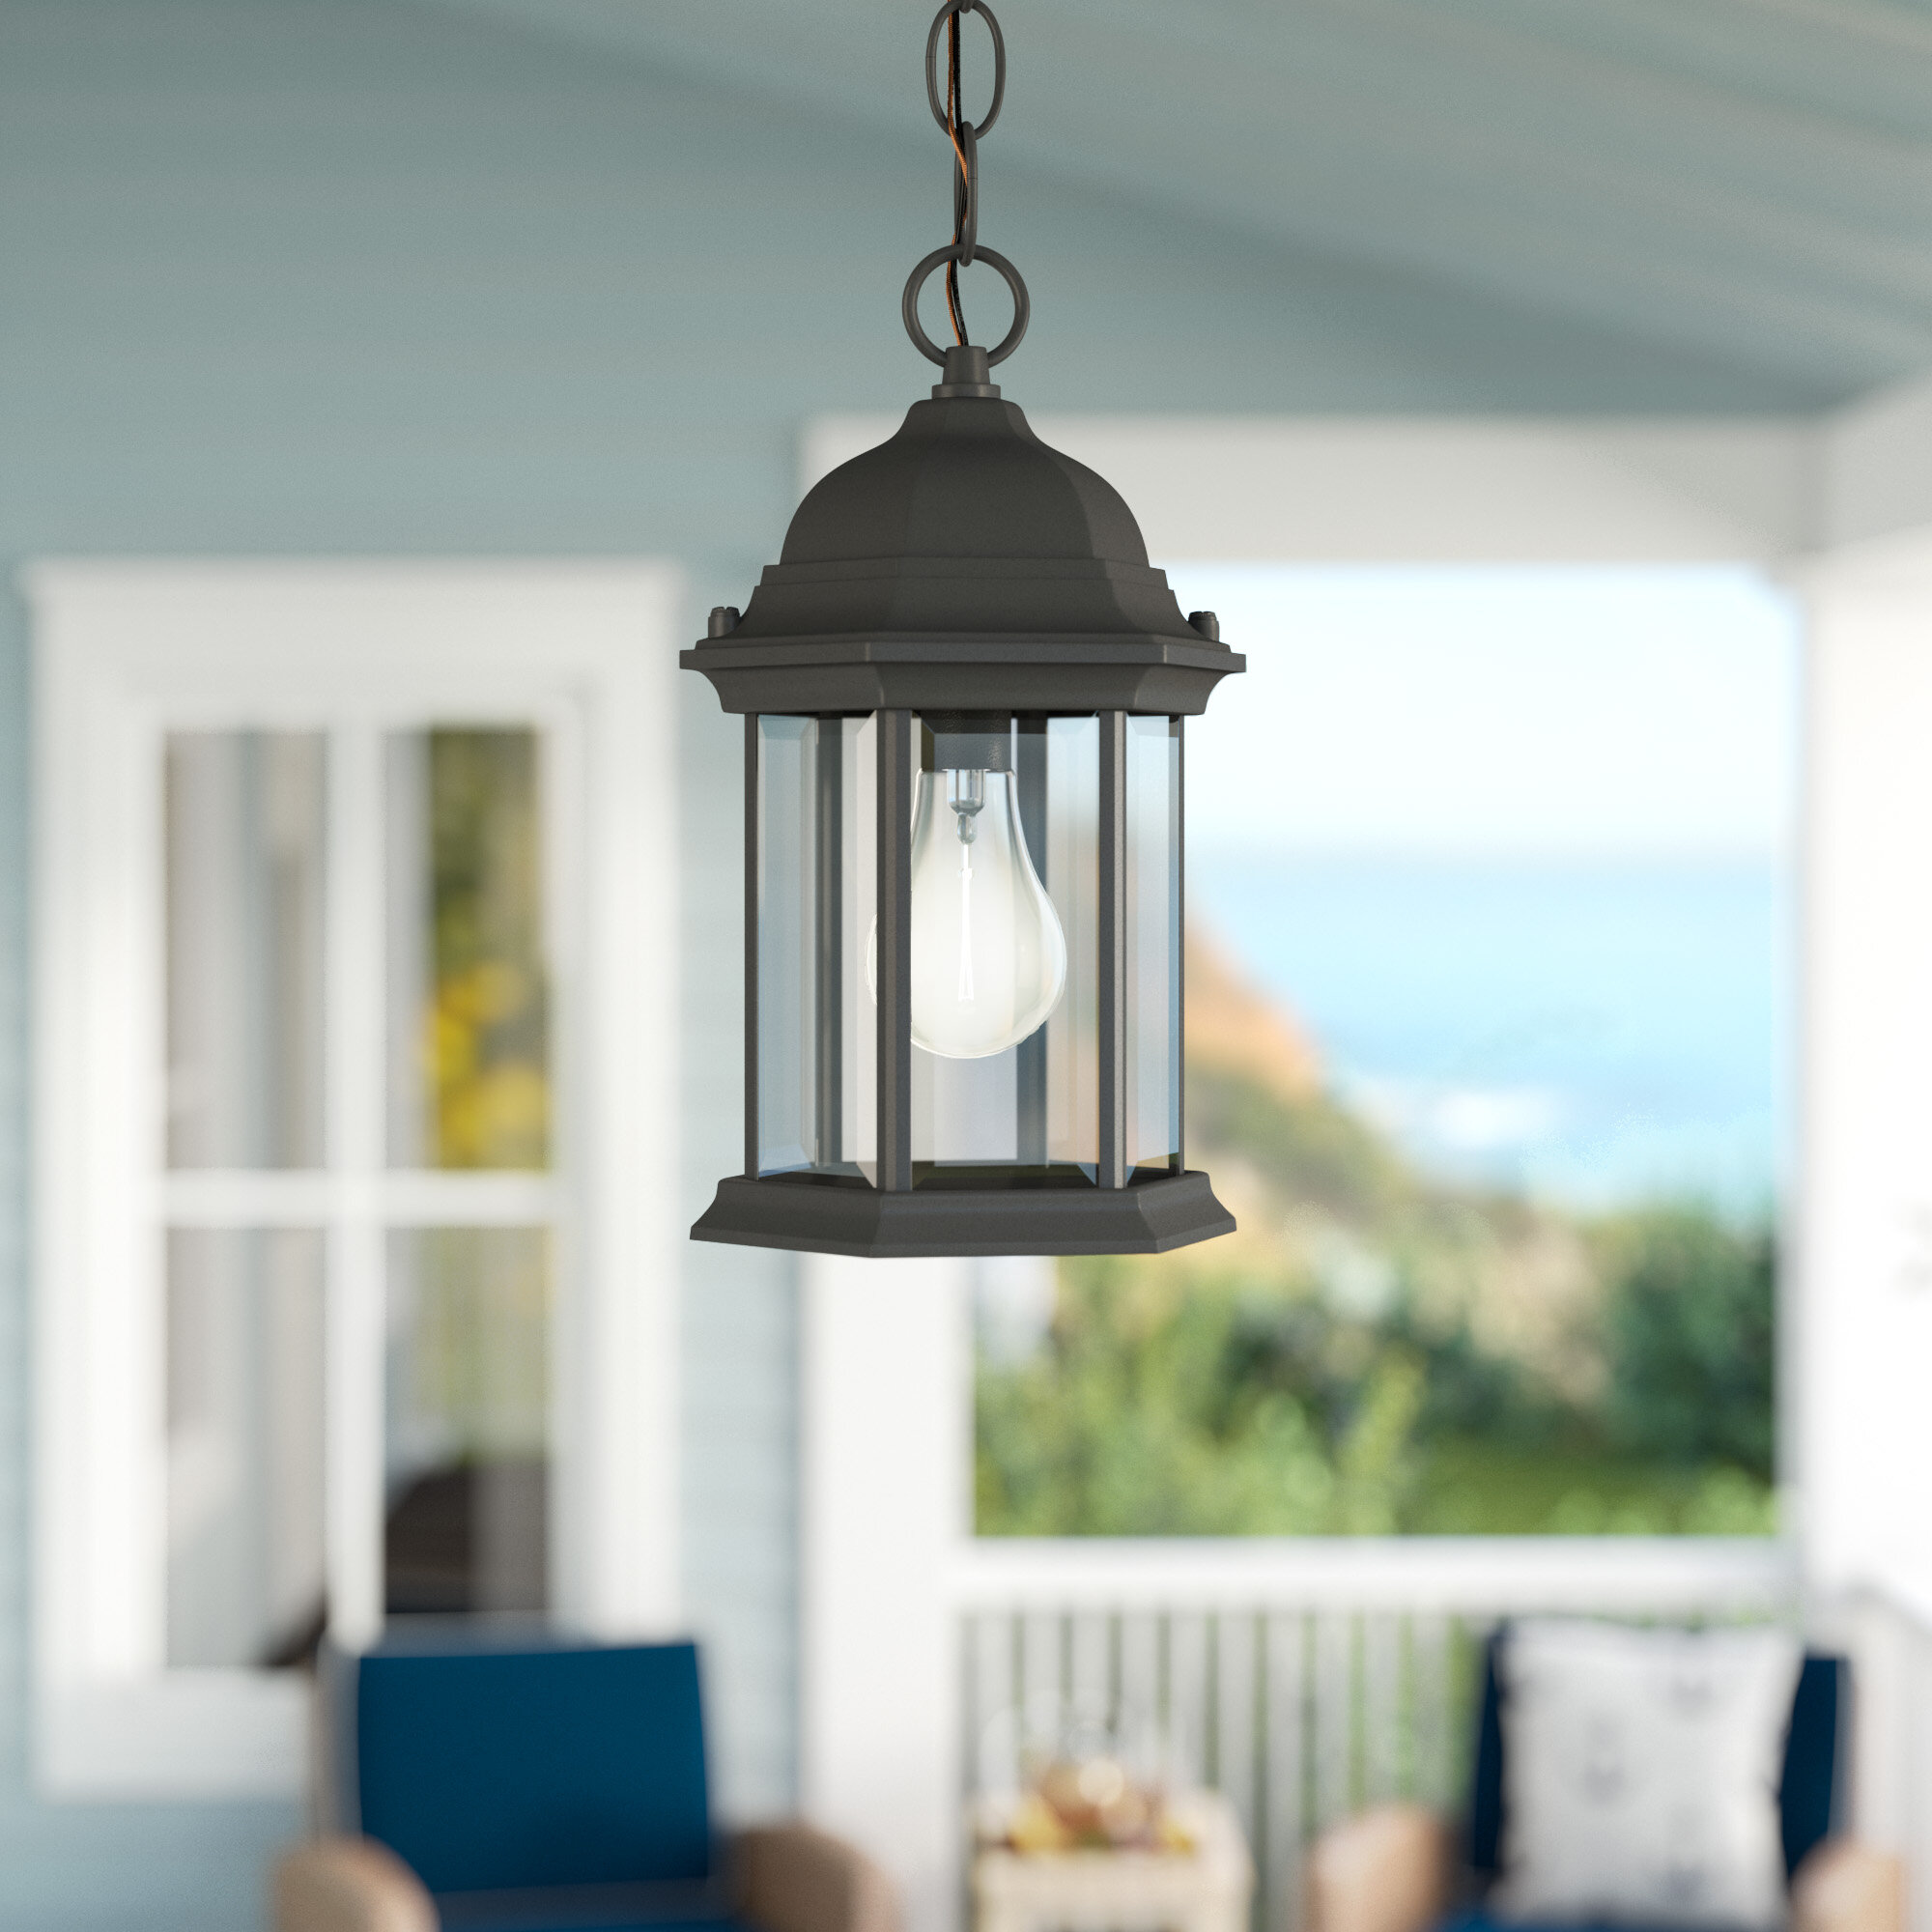 Breakwater bay frederica 1 light outdoor hanging lantern reviews wayfair